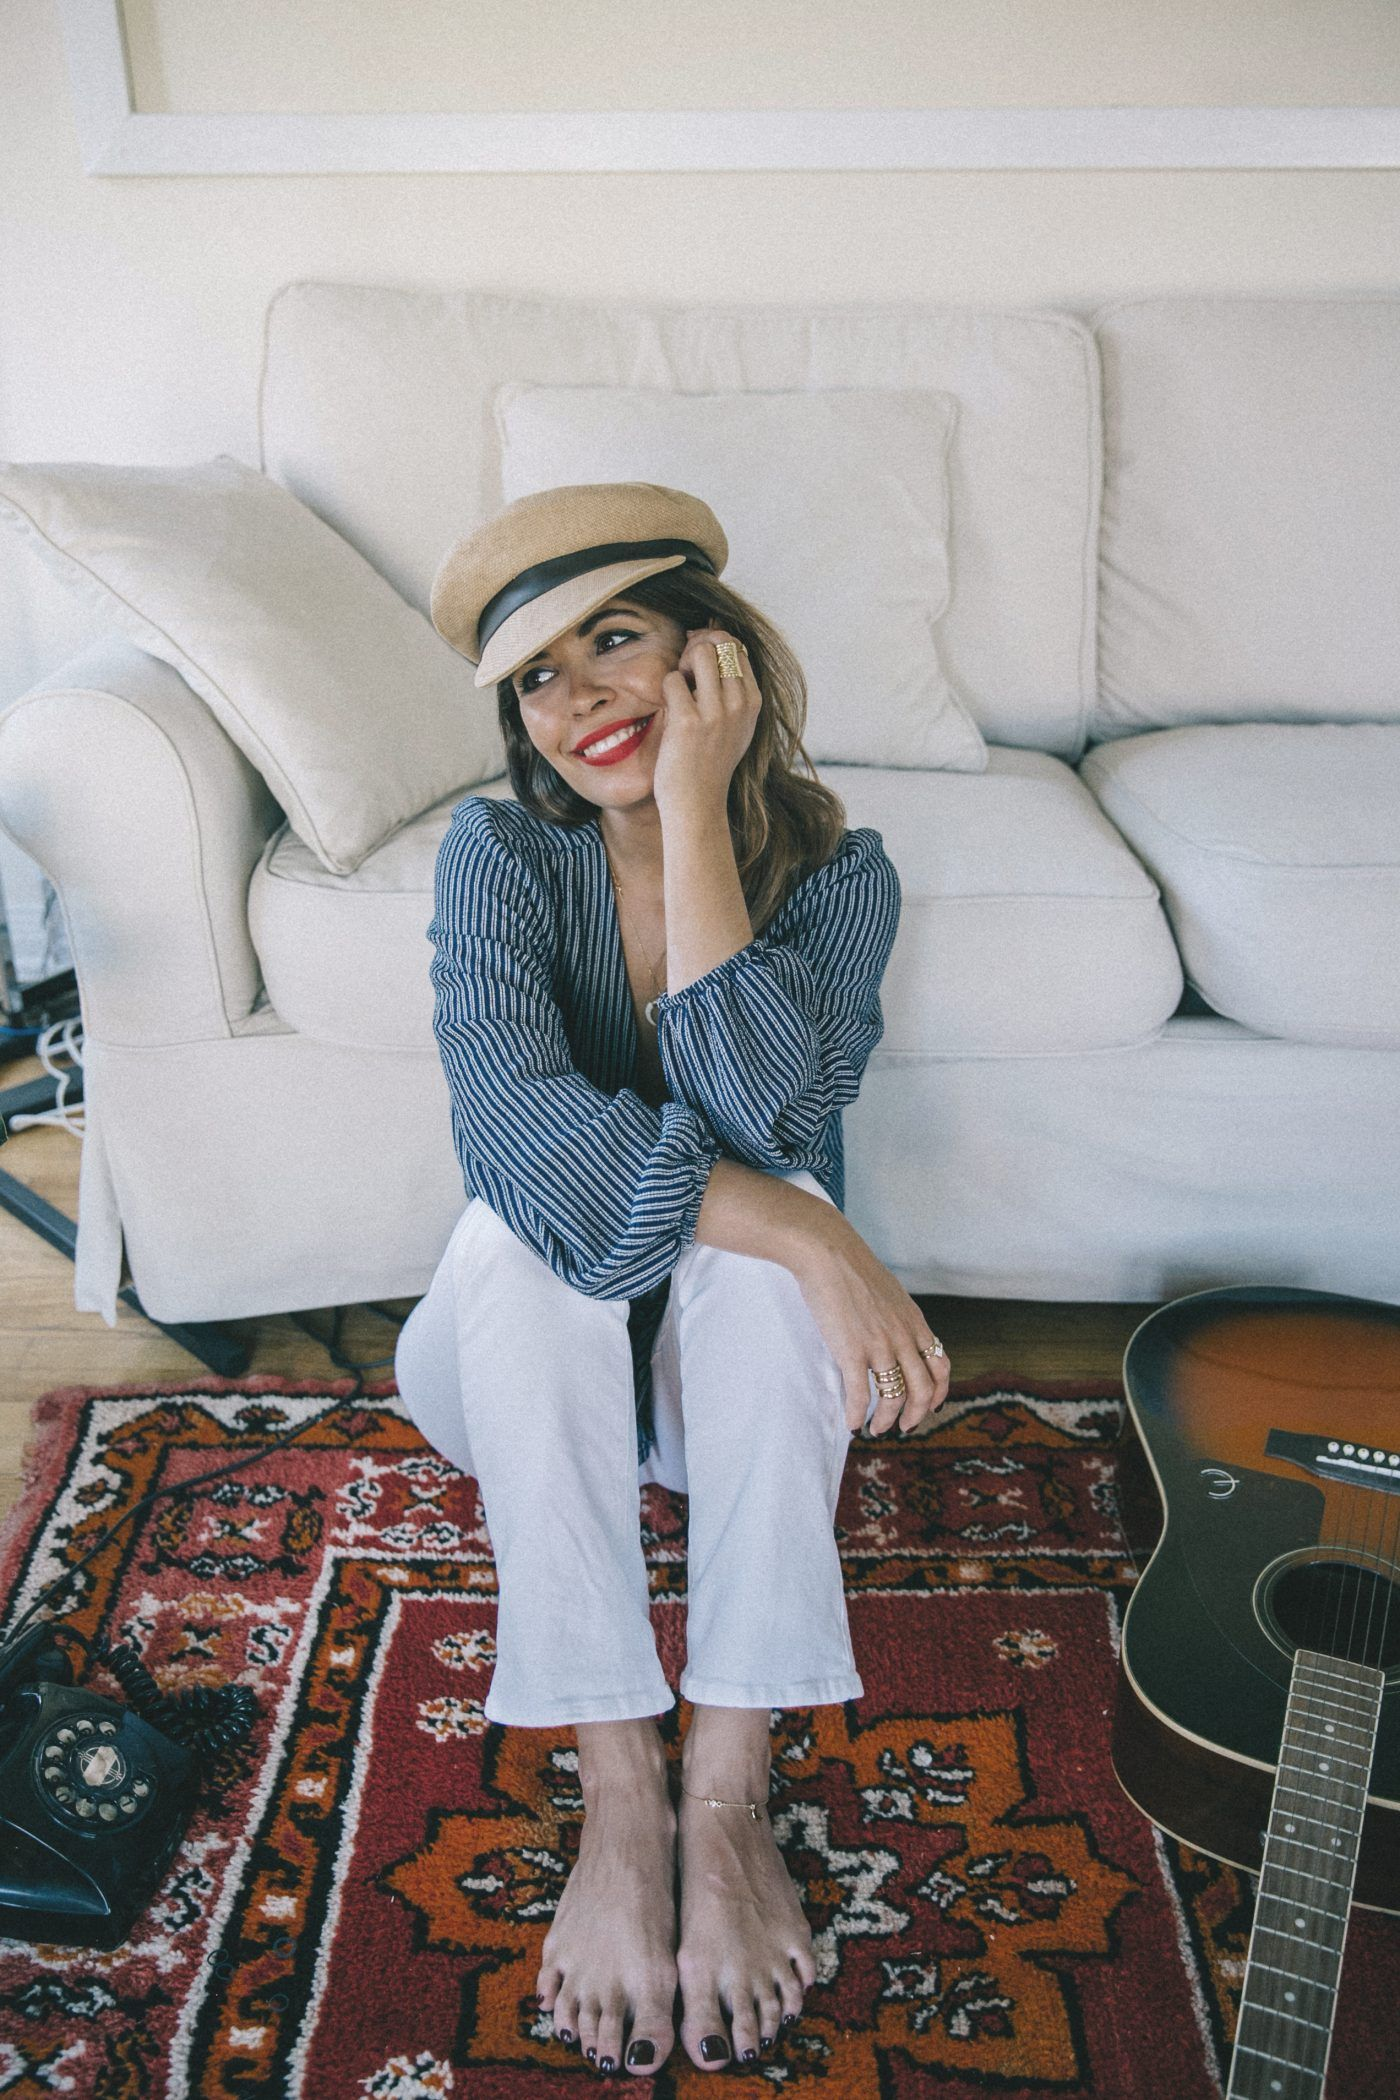 Maria_Pascual-Collage_Vintage_Collection-Paige_Denim-Free_People_Hat-Striped_Blouse-21